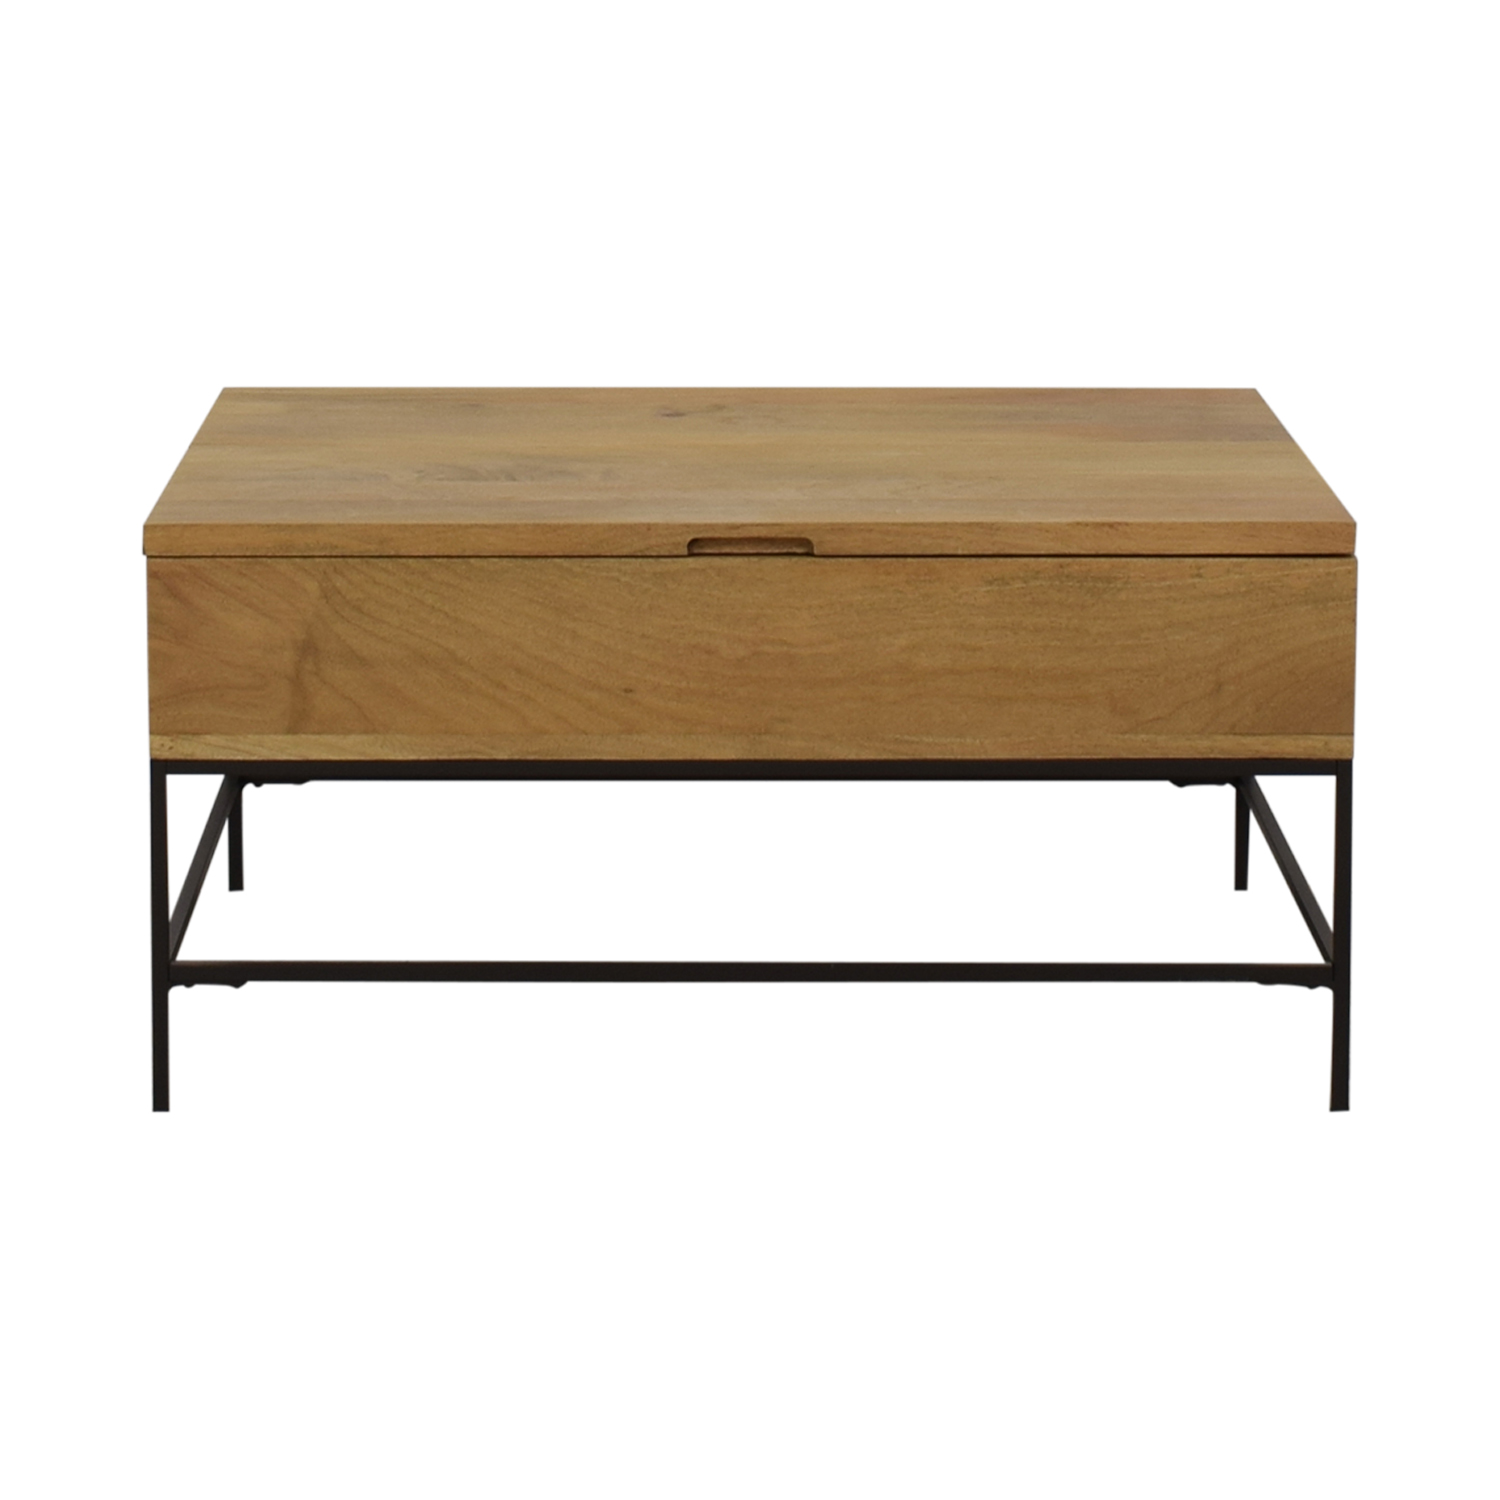 Pop Up Coffee Table.55 Off West Elm West Elm Industrial Storage Pop Up Coffee Table Tables